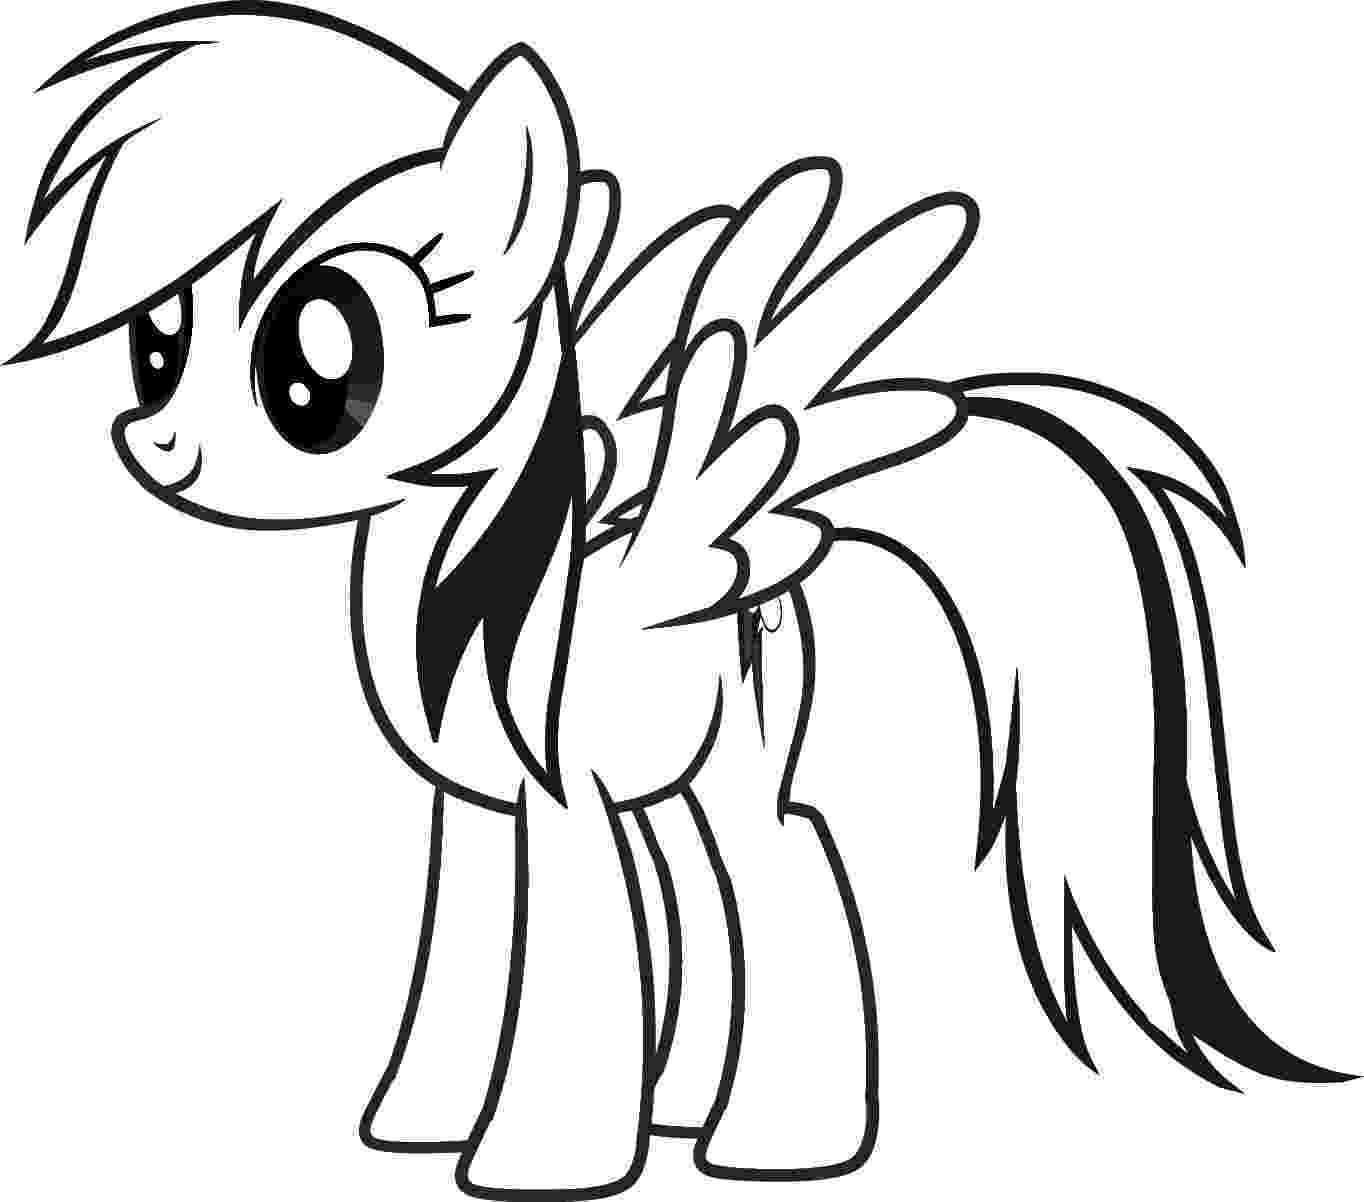 rainbow dash pictures to color rainbow dash coloring page clipart panda free clipart rainbow dash pictures to color